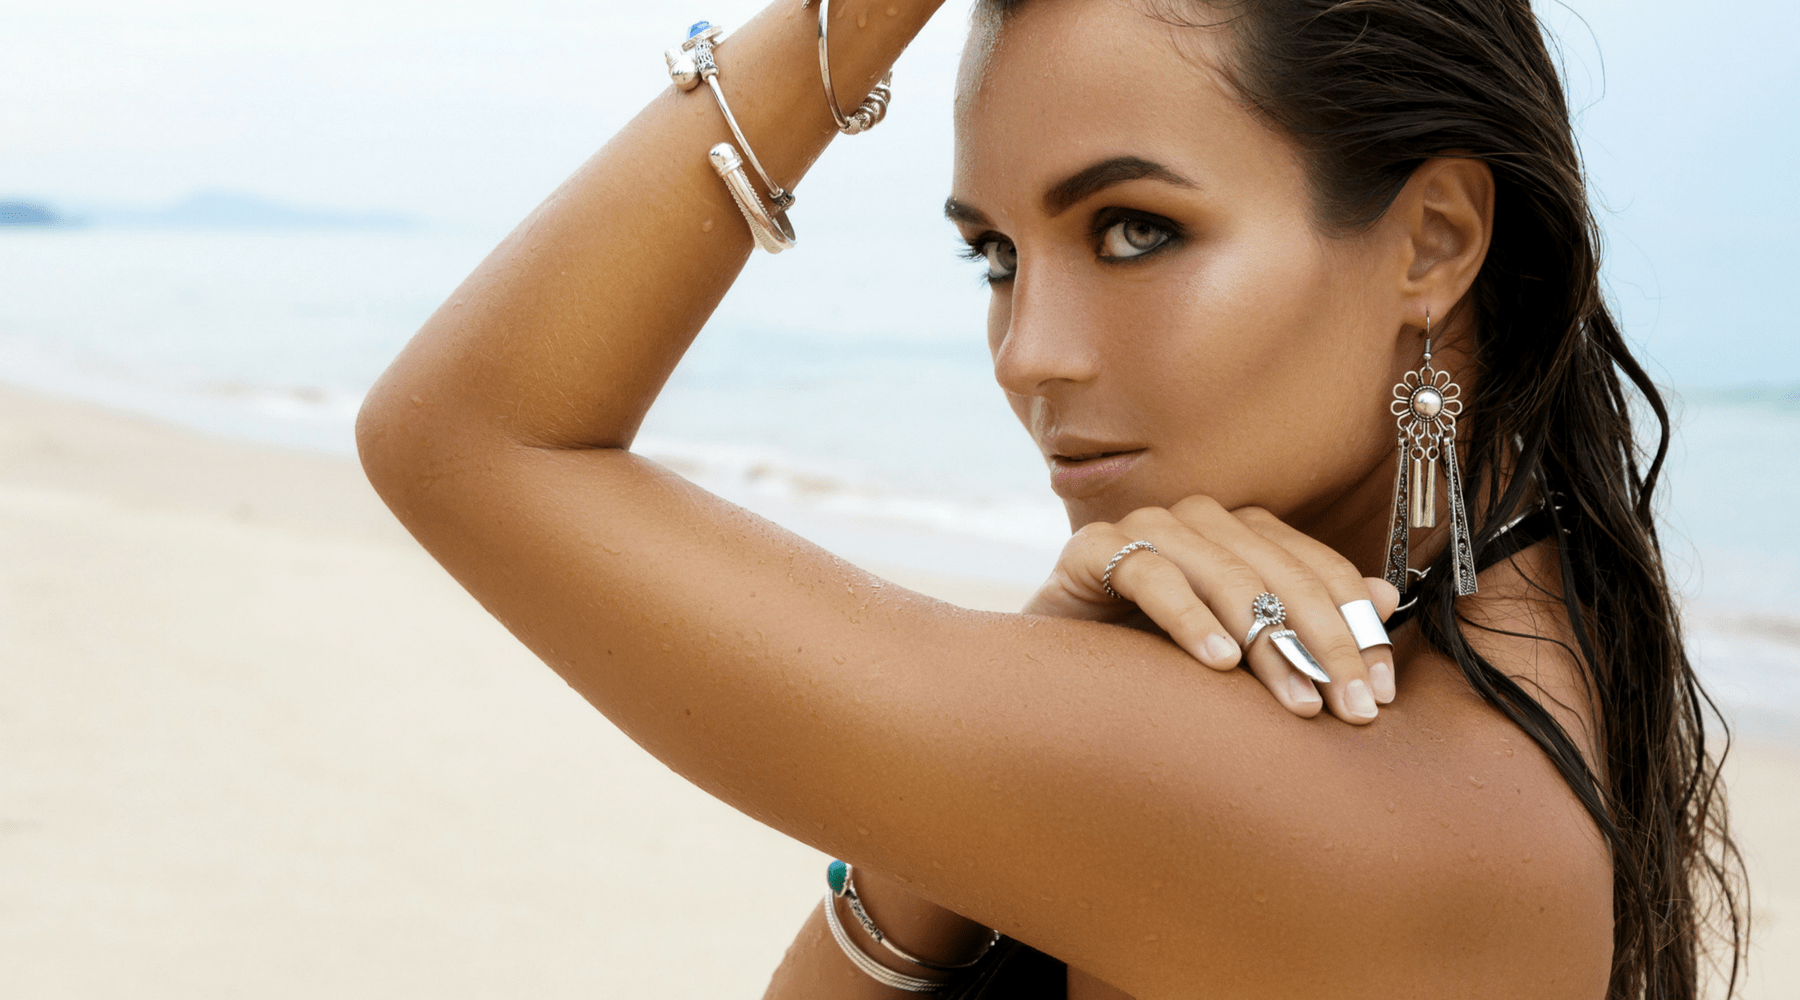 8 Sizzling Tips for Summer Jewelry